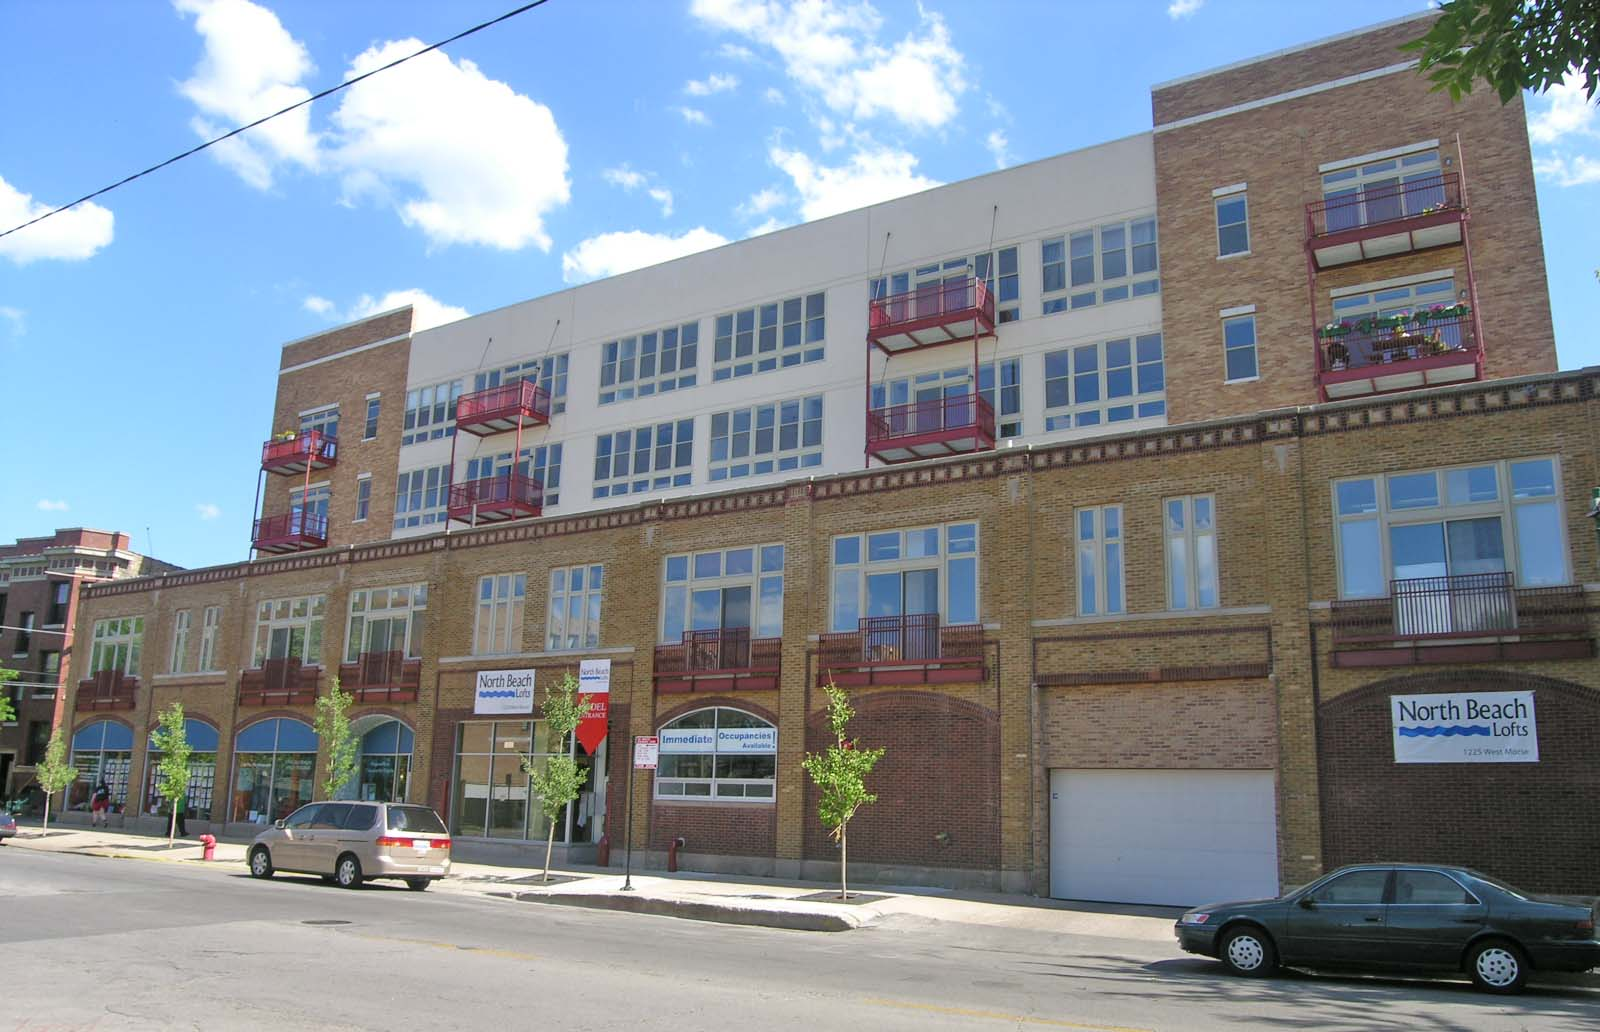 Sales update: Two remain at North Beach Lofts